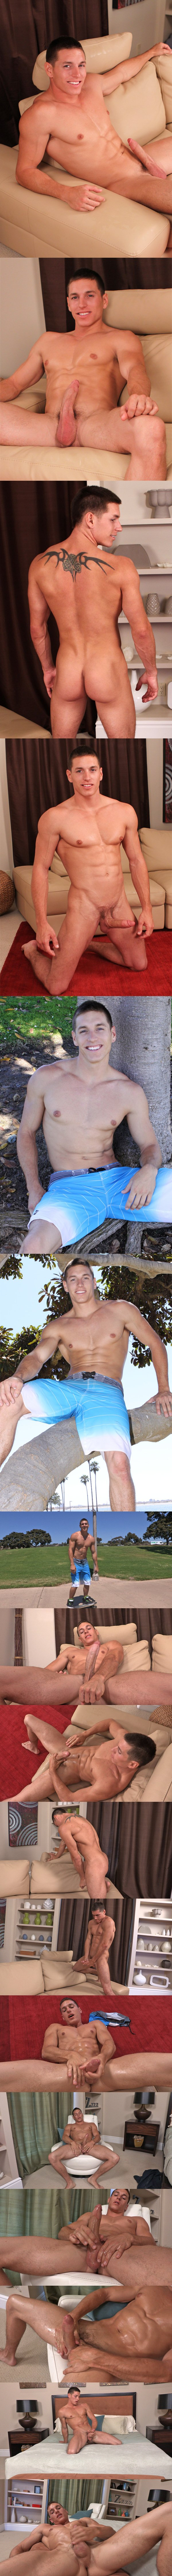 Young hung jock Ashton busts a nut at Seancody 02